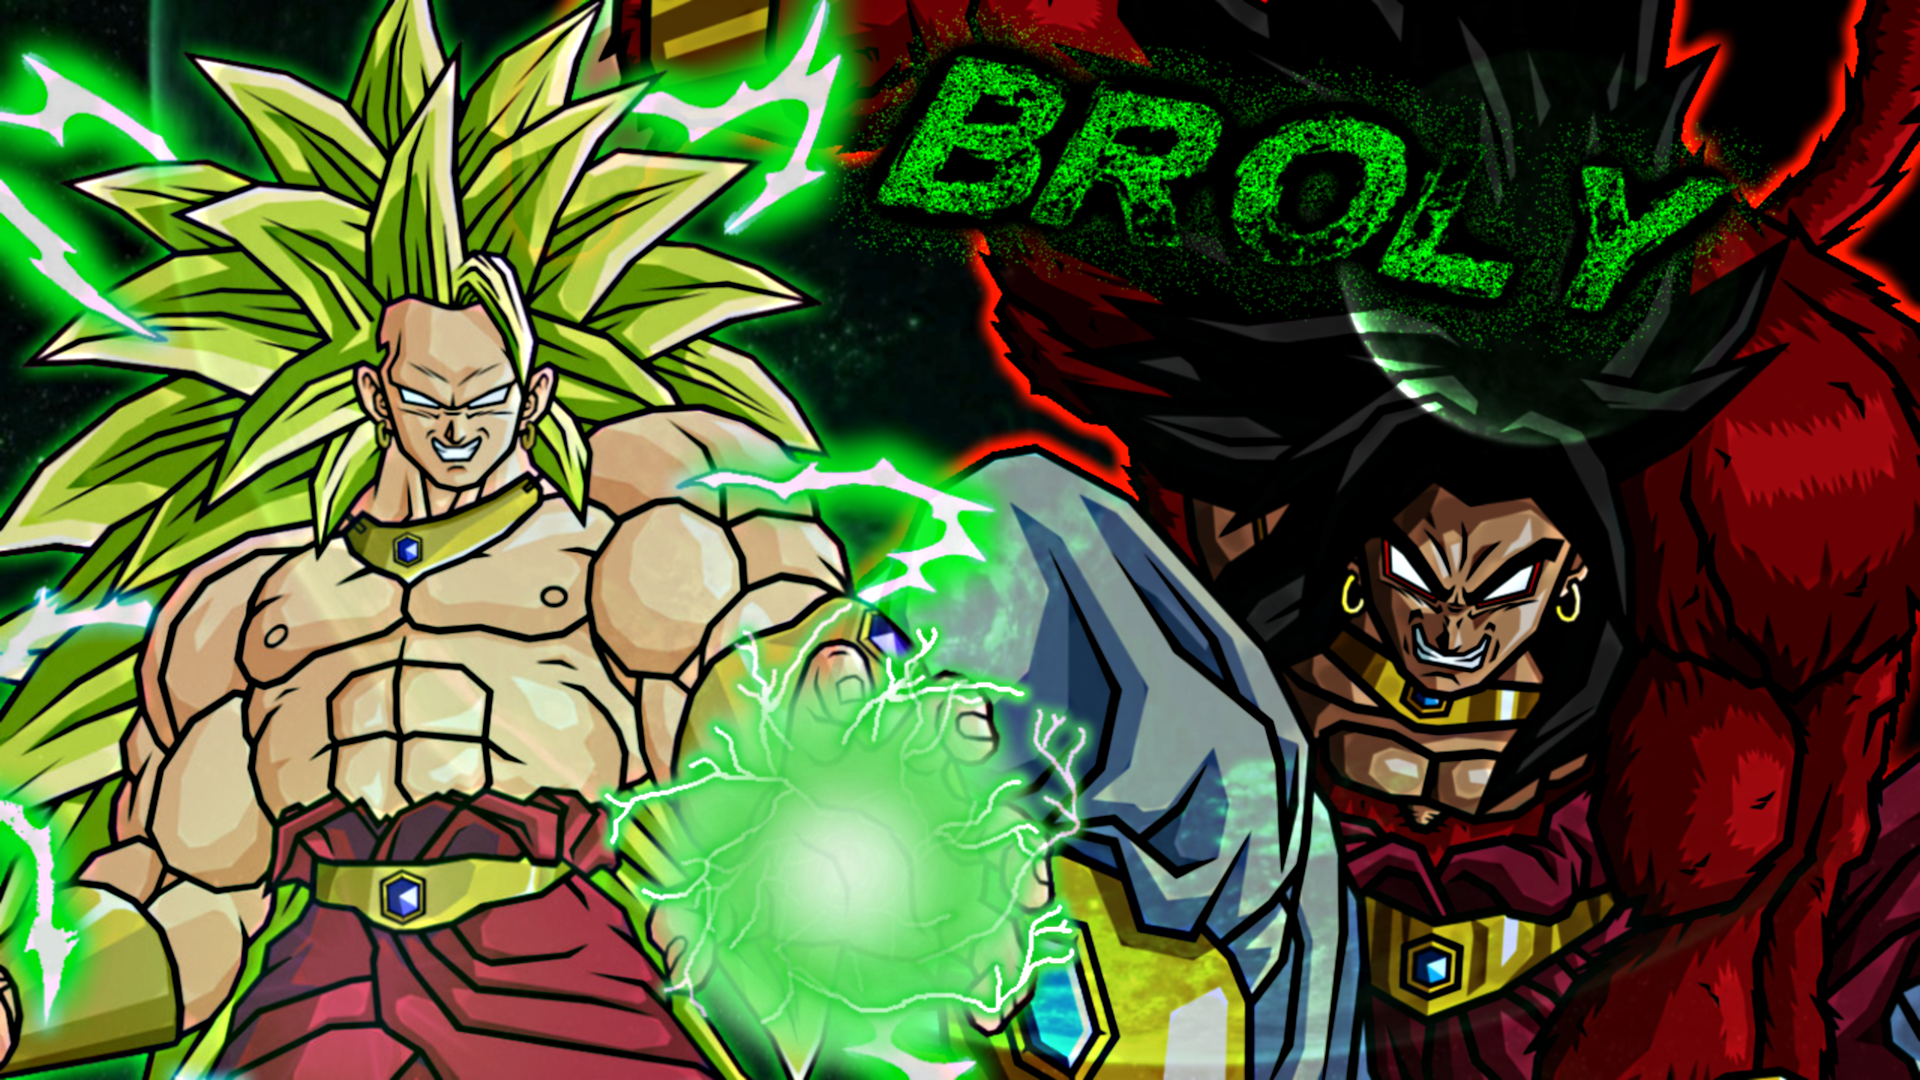 wallpaper nr 33 dragonball broly 2 by wallpaperzero on